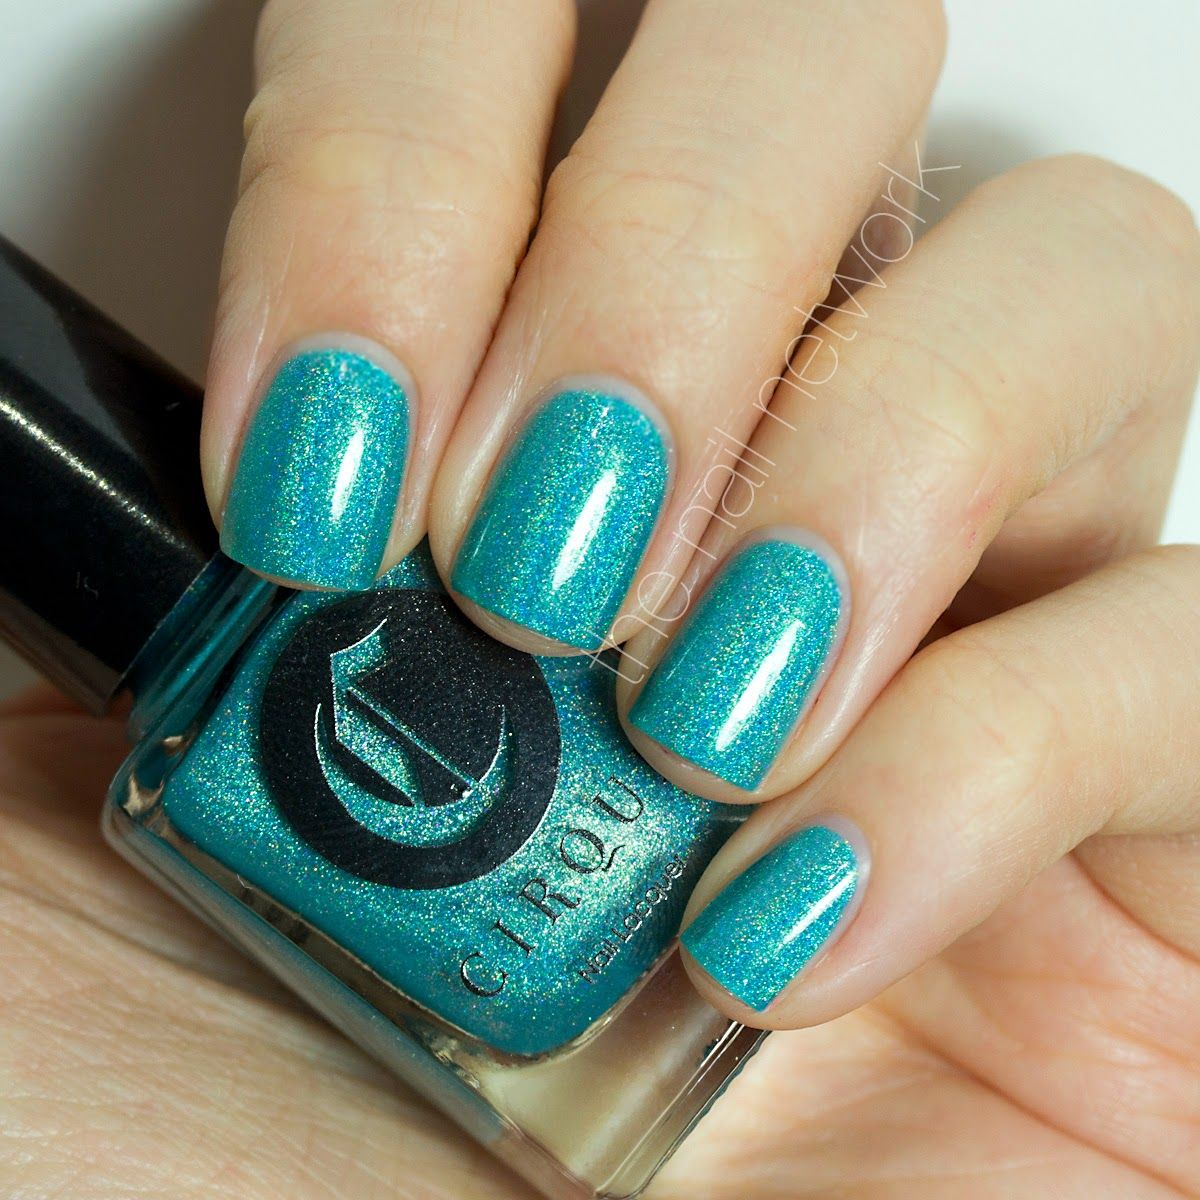 Cirque heritage collection swatchesreview nails blue